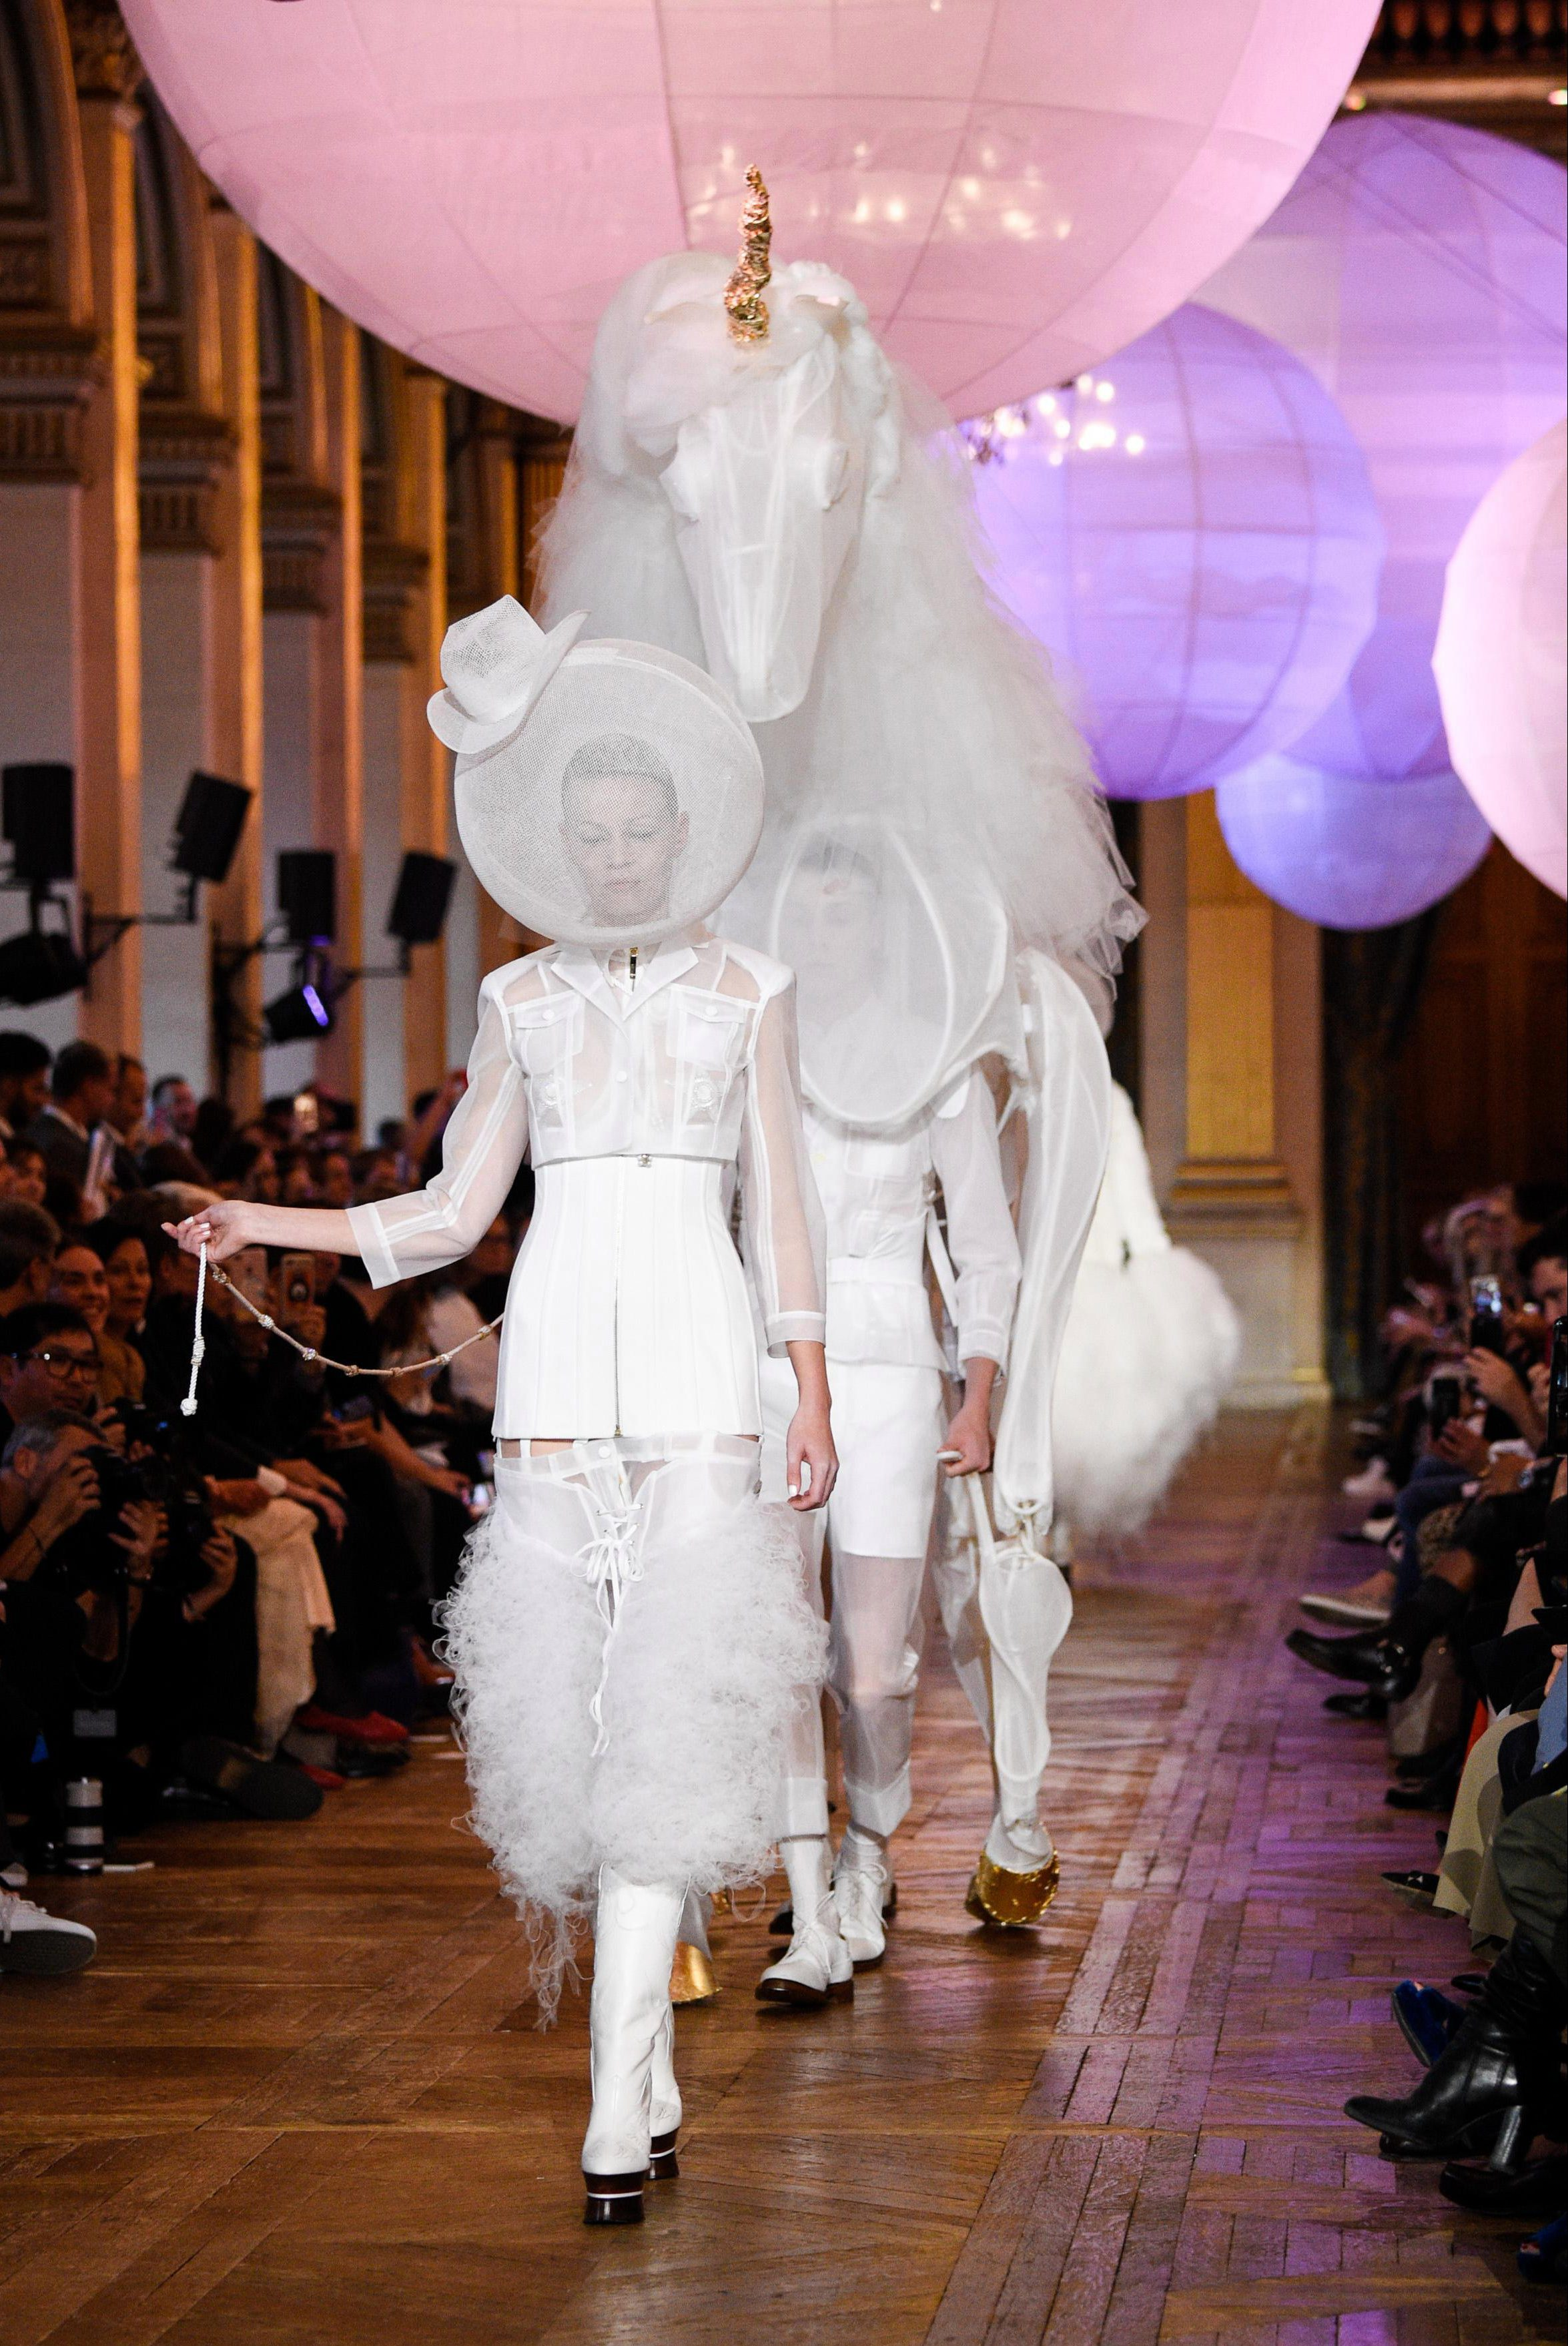 The finale of the runway show included a robotic unicorn dressed in a matching white lace look